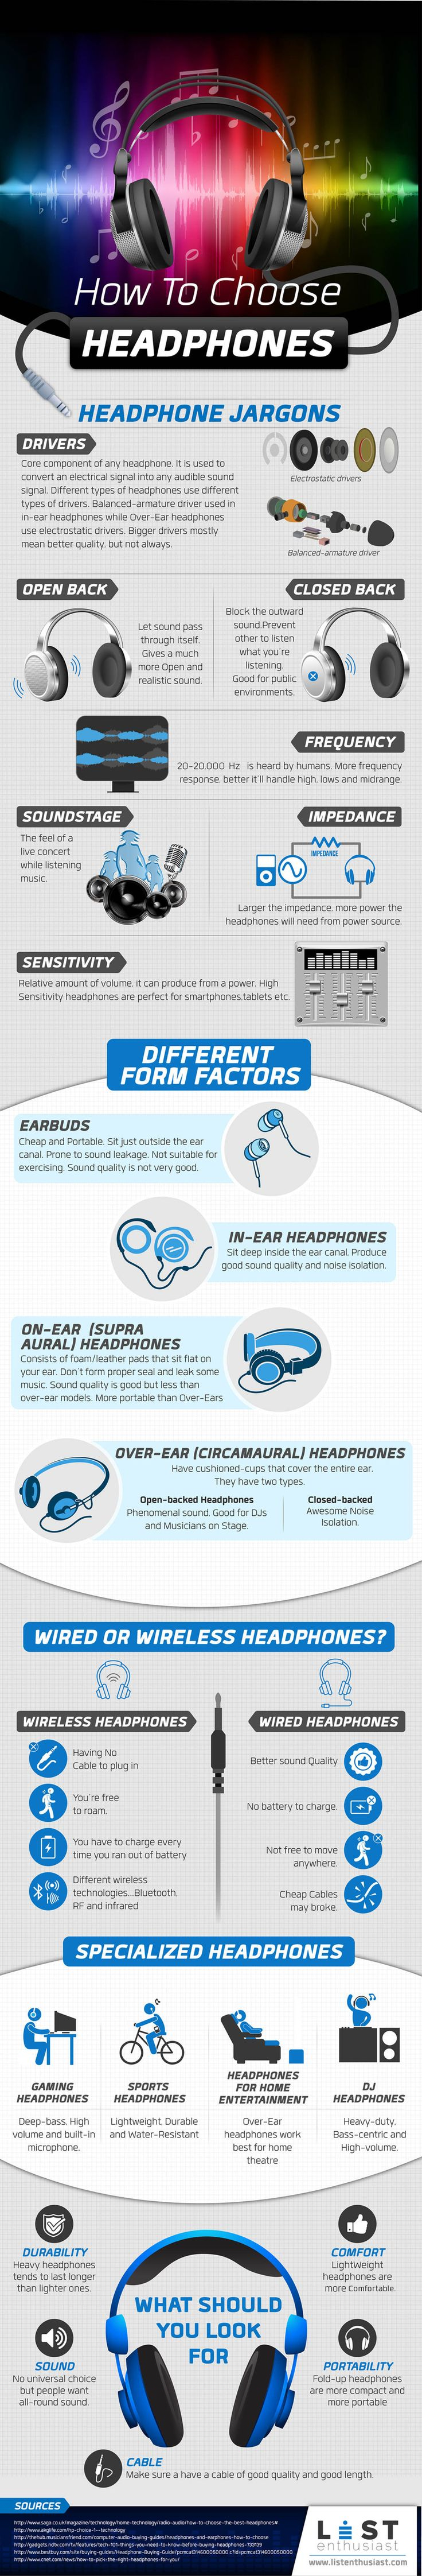 How to Choose Headphones That Suit You